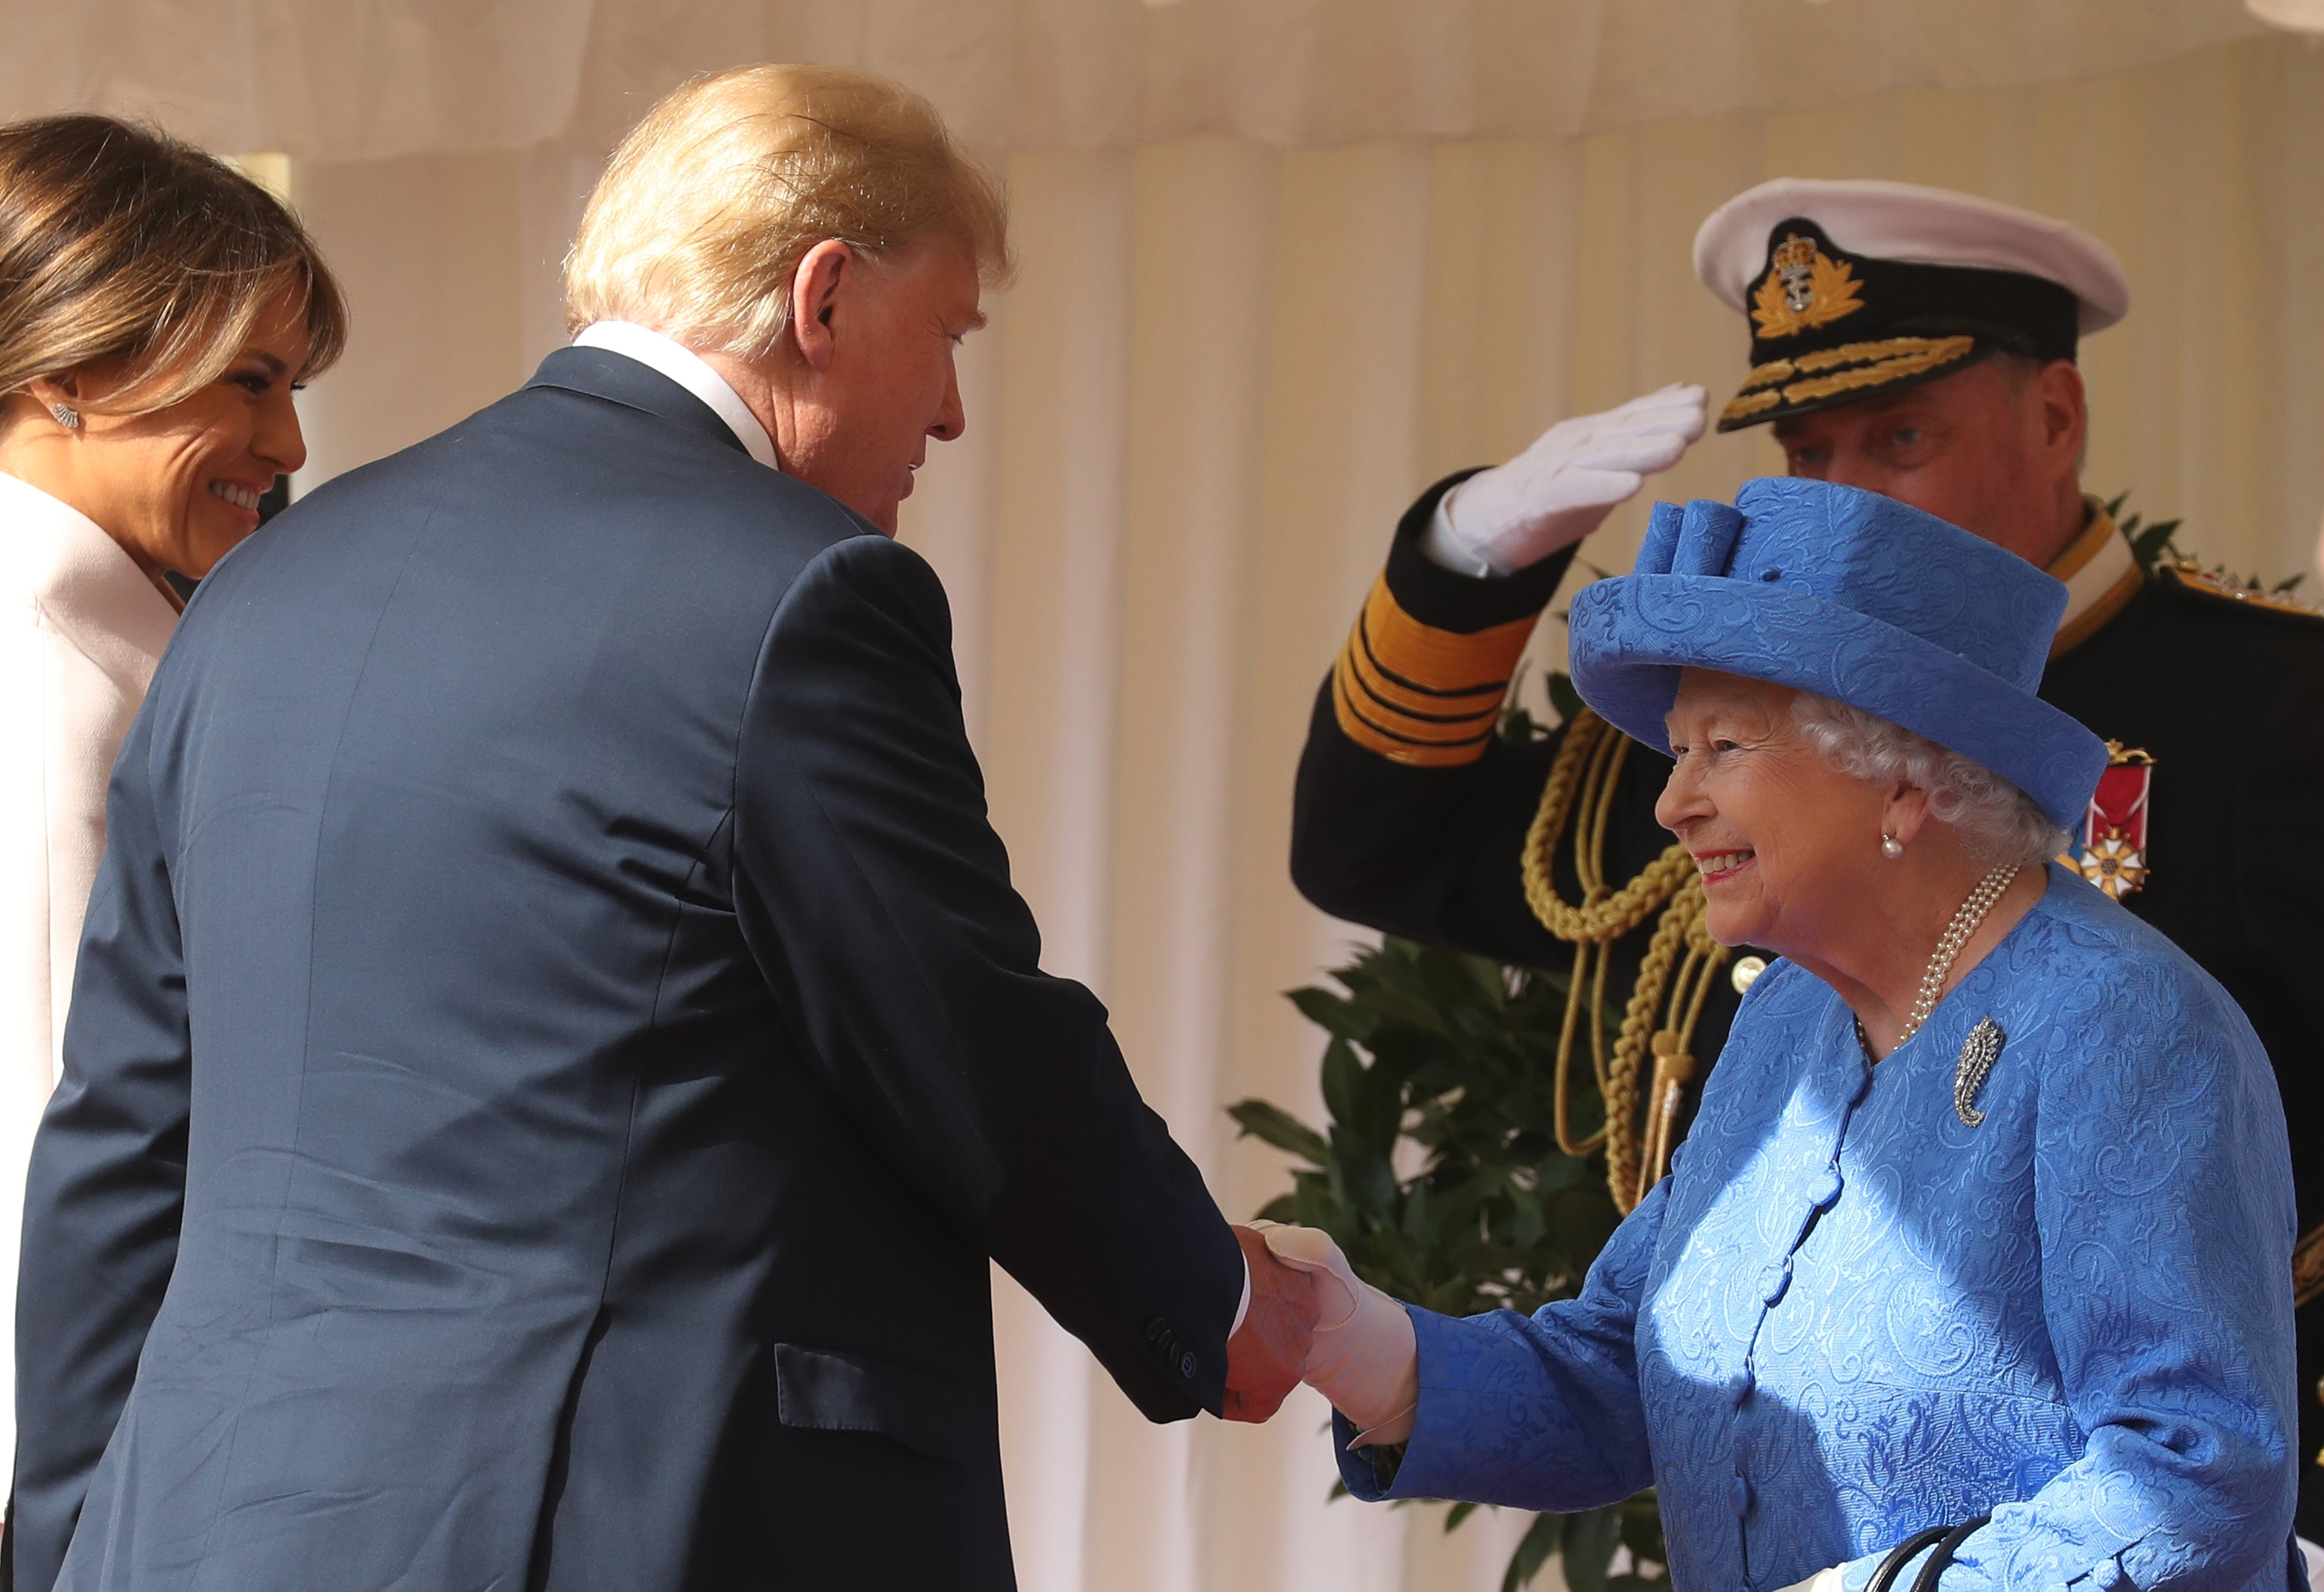 President Donald Trump and First Lady Melania Trump meeting the Queen in July 2018 | Photo: Getty Images